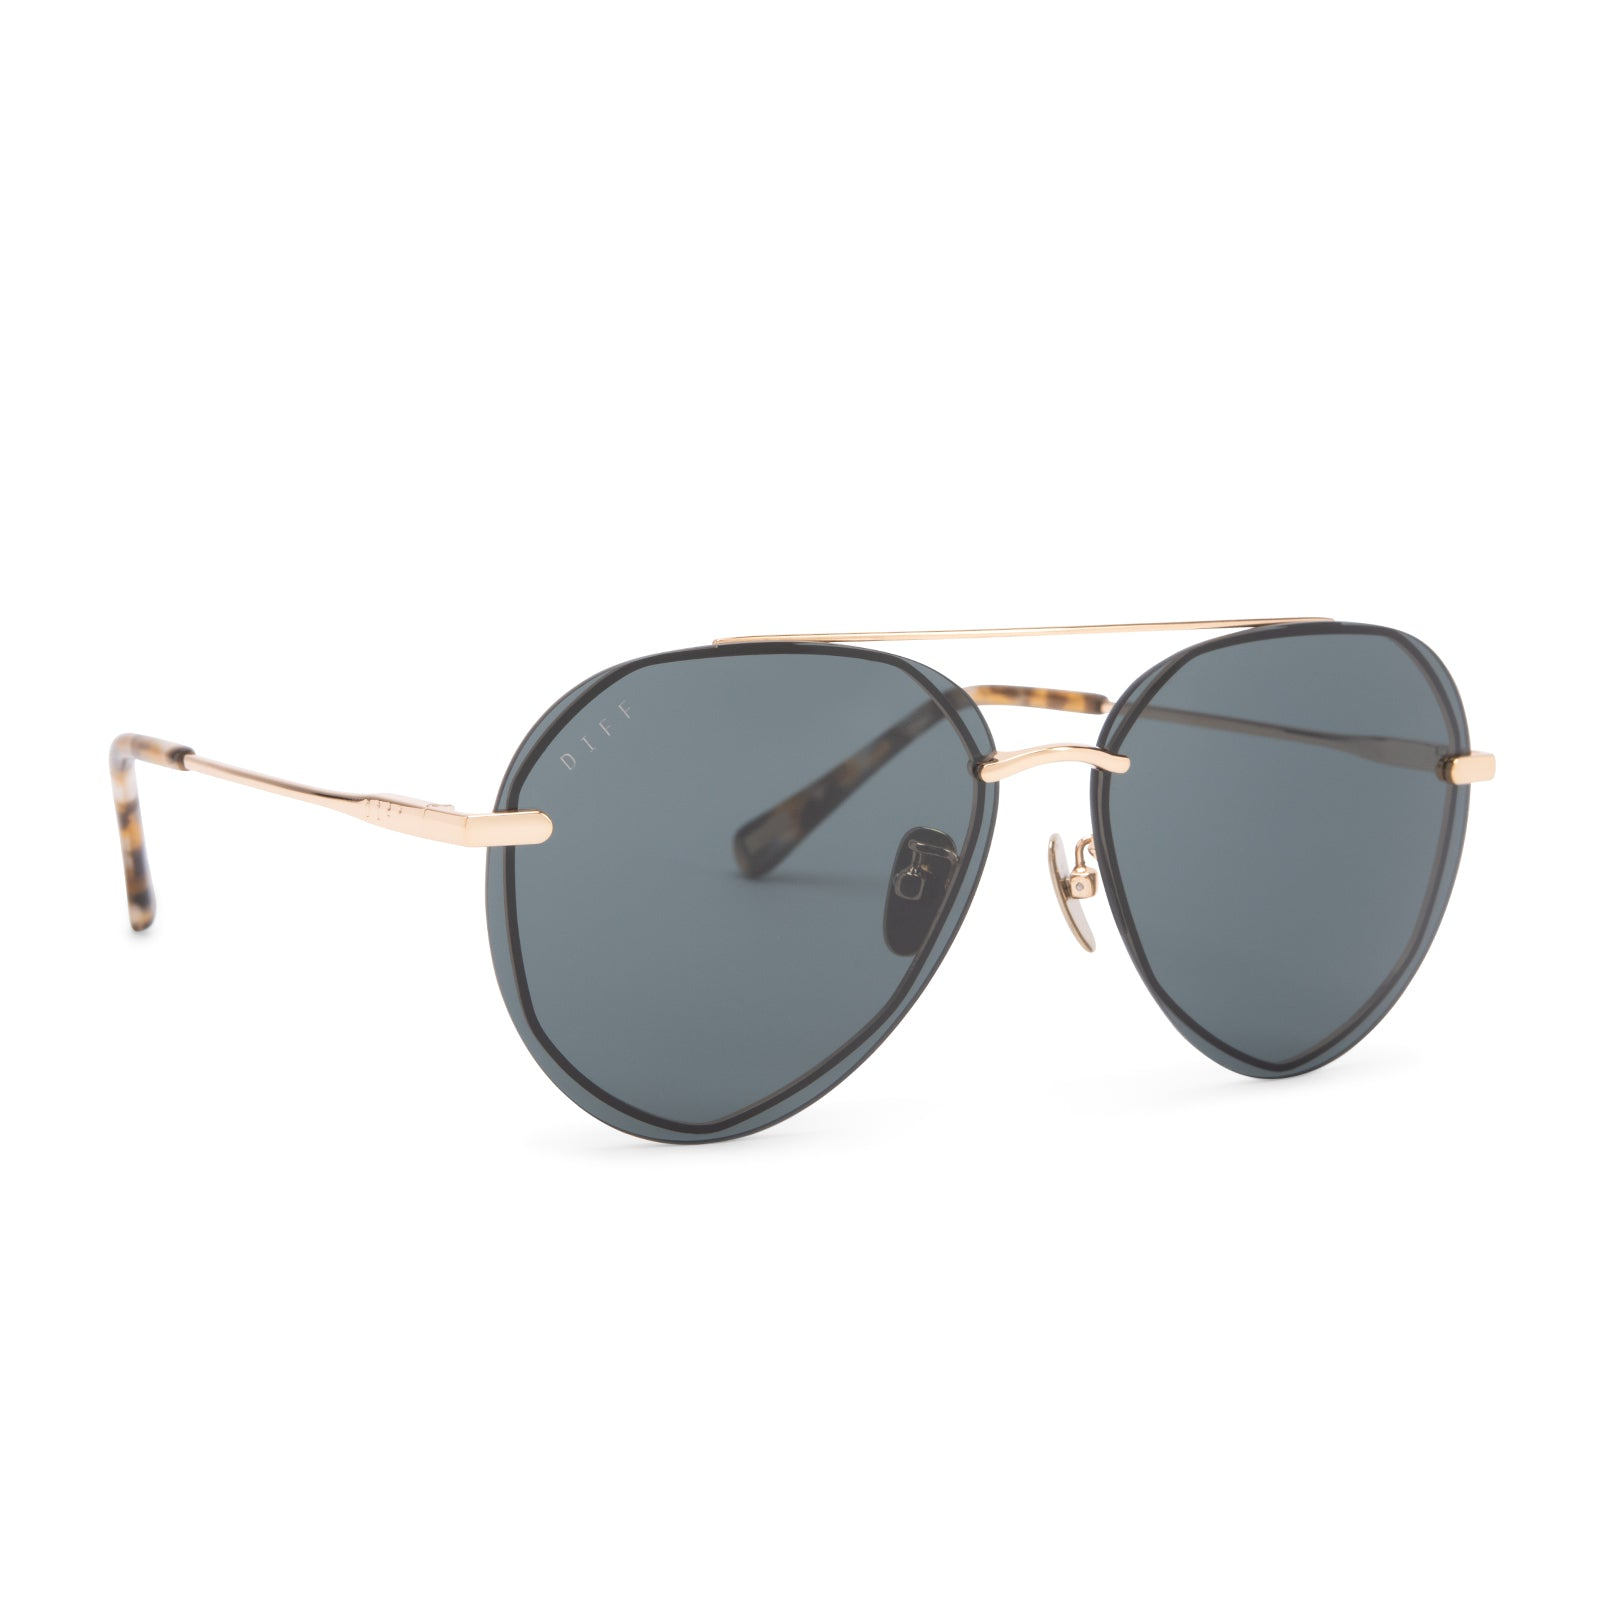 Lenox sunglasses with gold frames and G15 polarized lens angle view